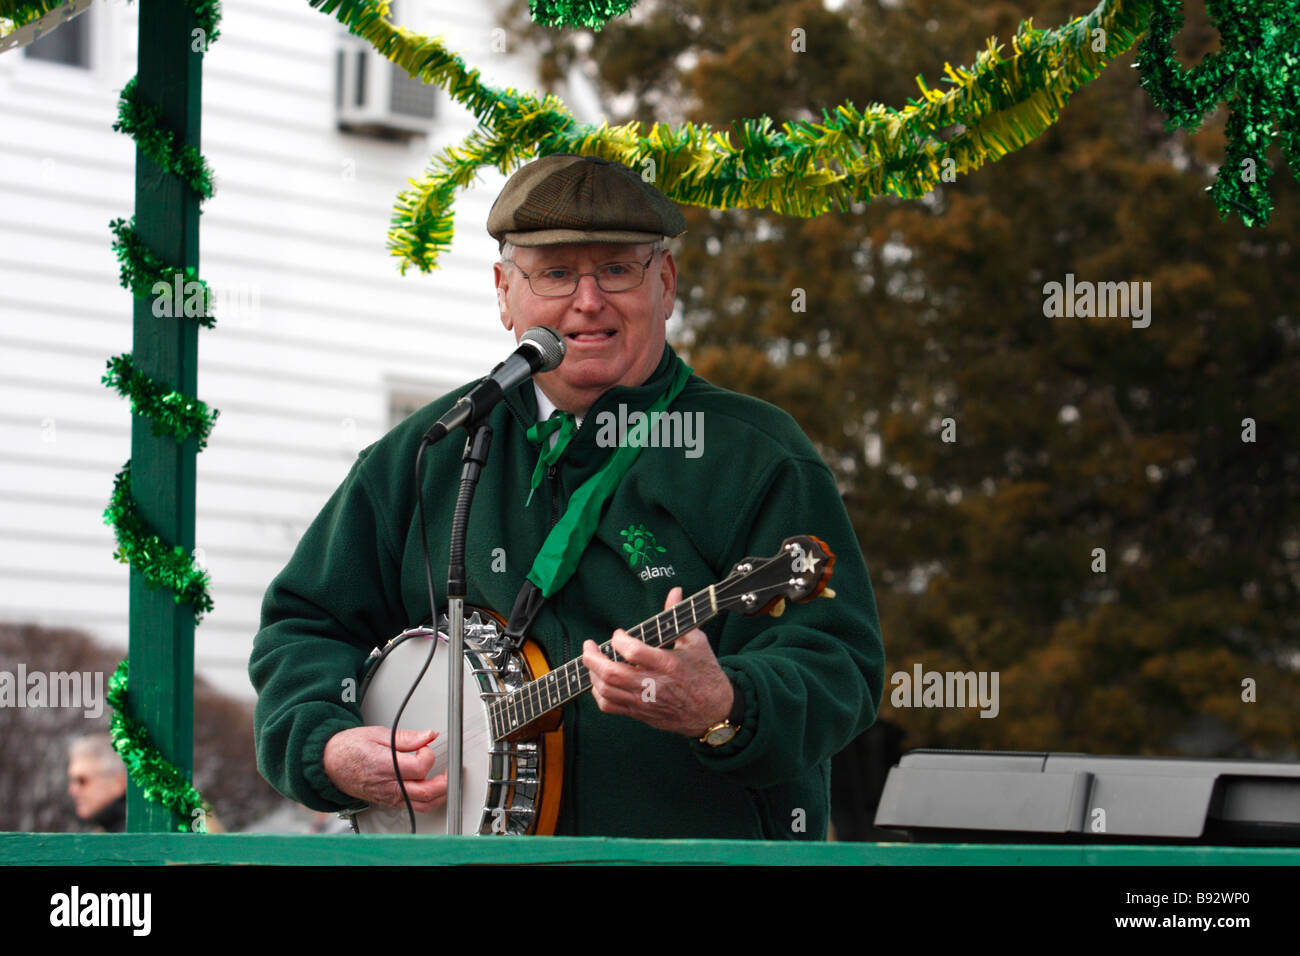 Man playing Banjo on float in St Patricks Day Parade - Stock Image